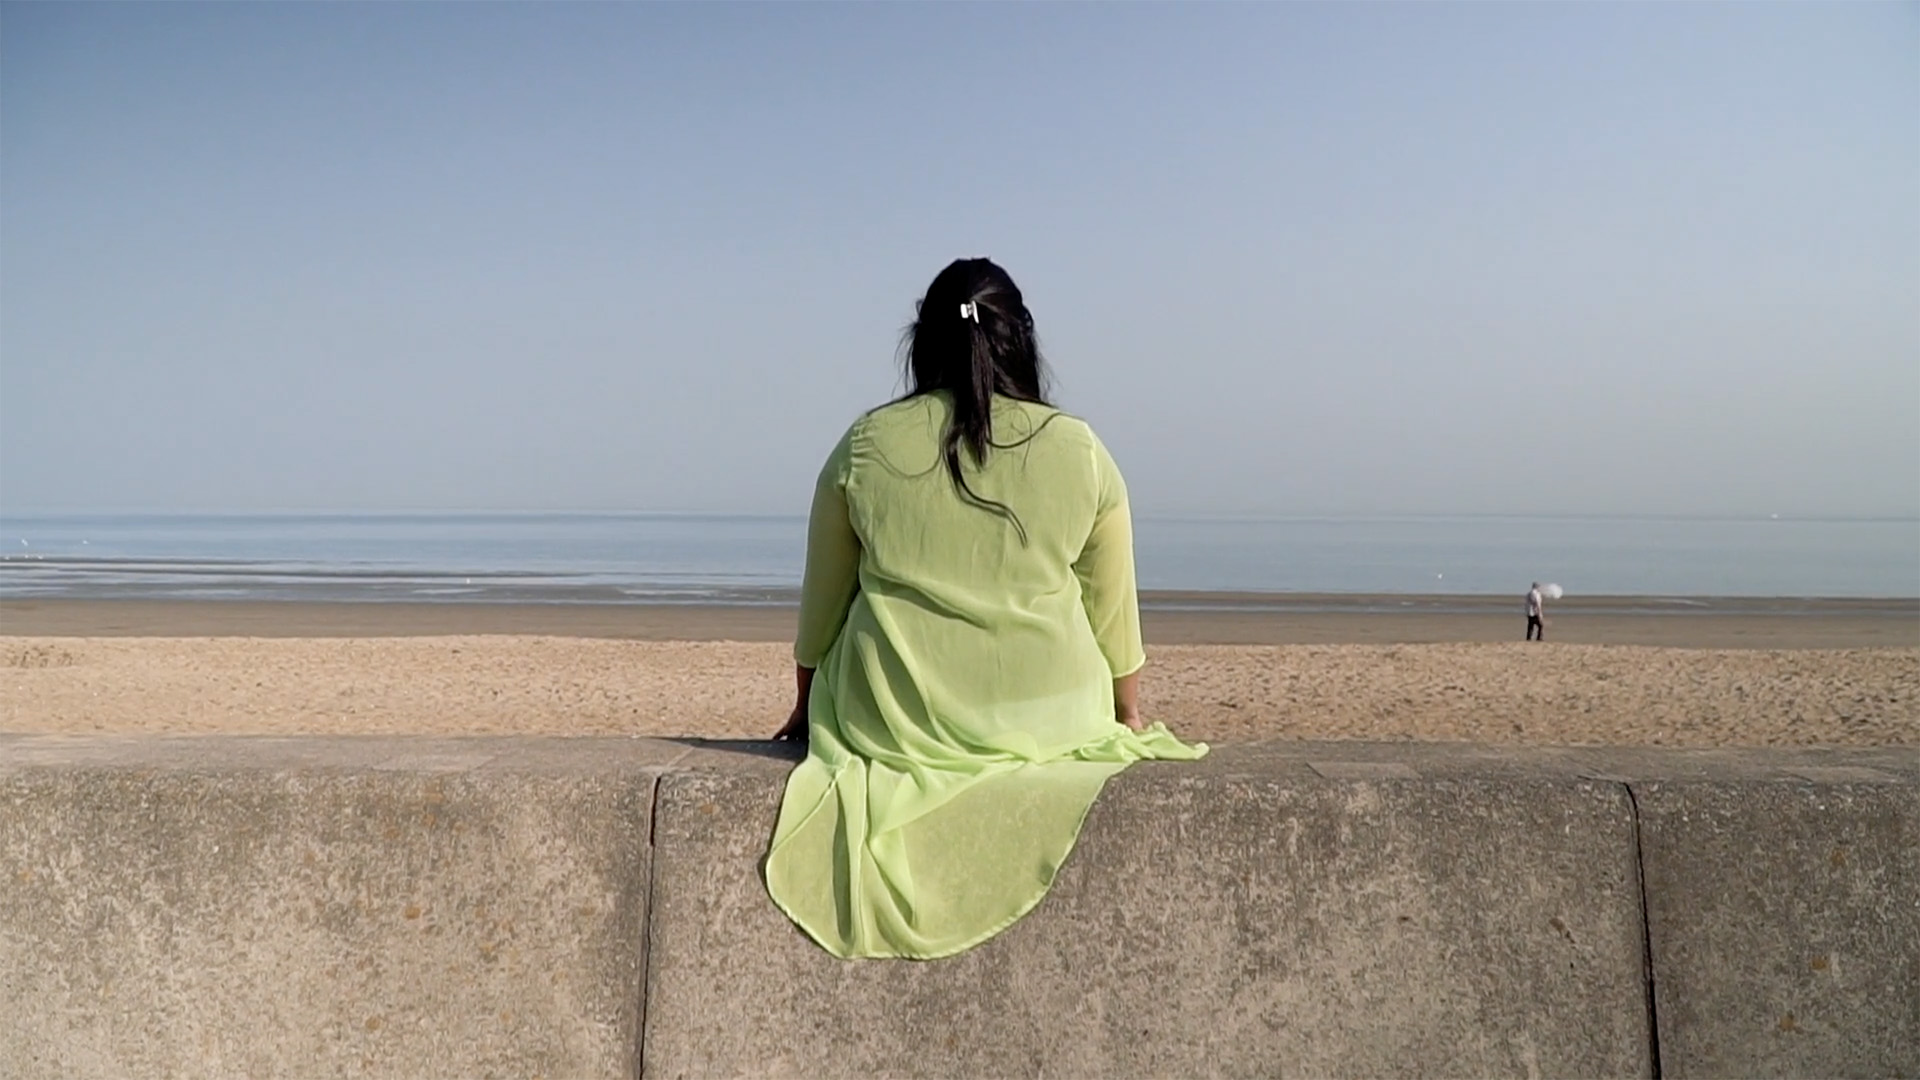 A participant in the Women's Aid project sits and looks out at the sea